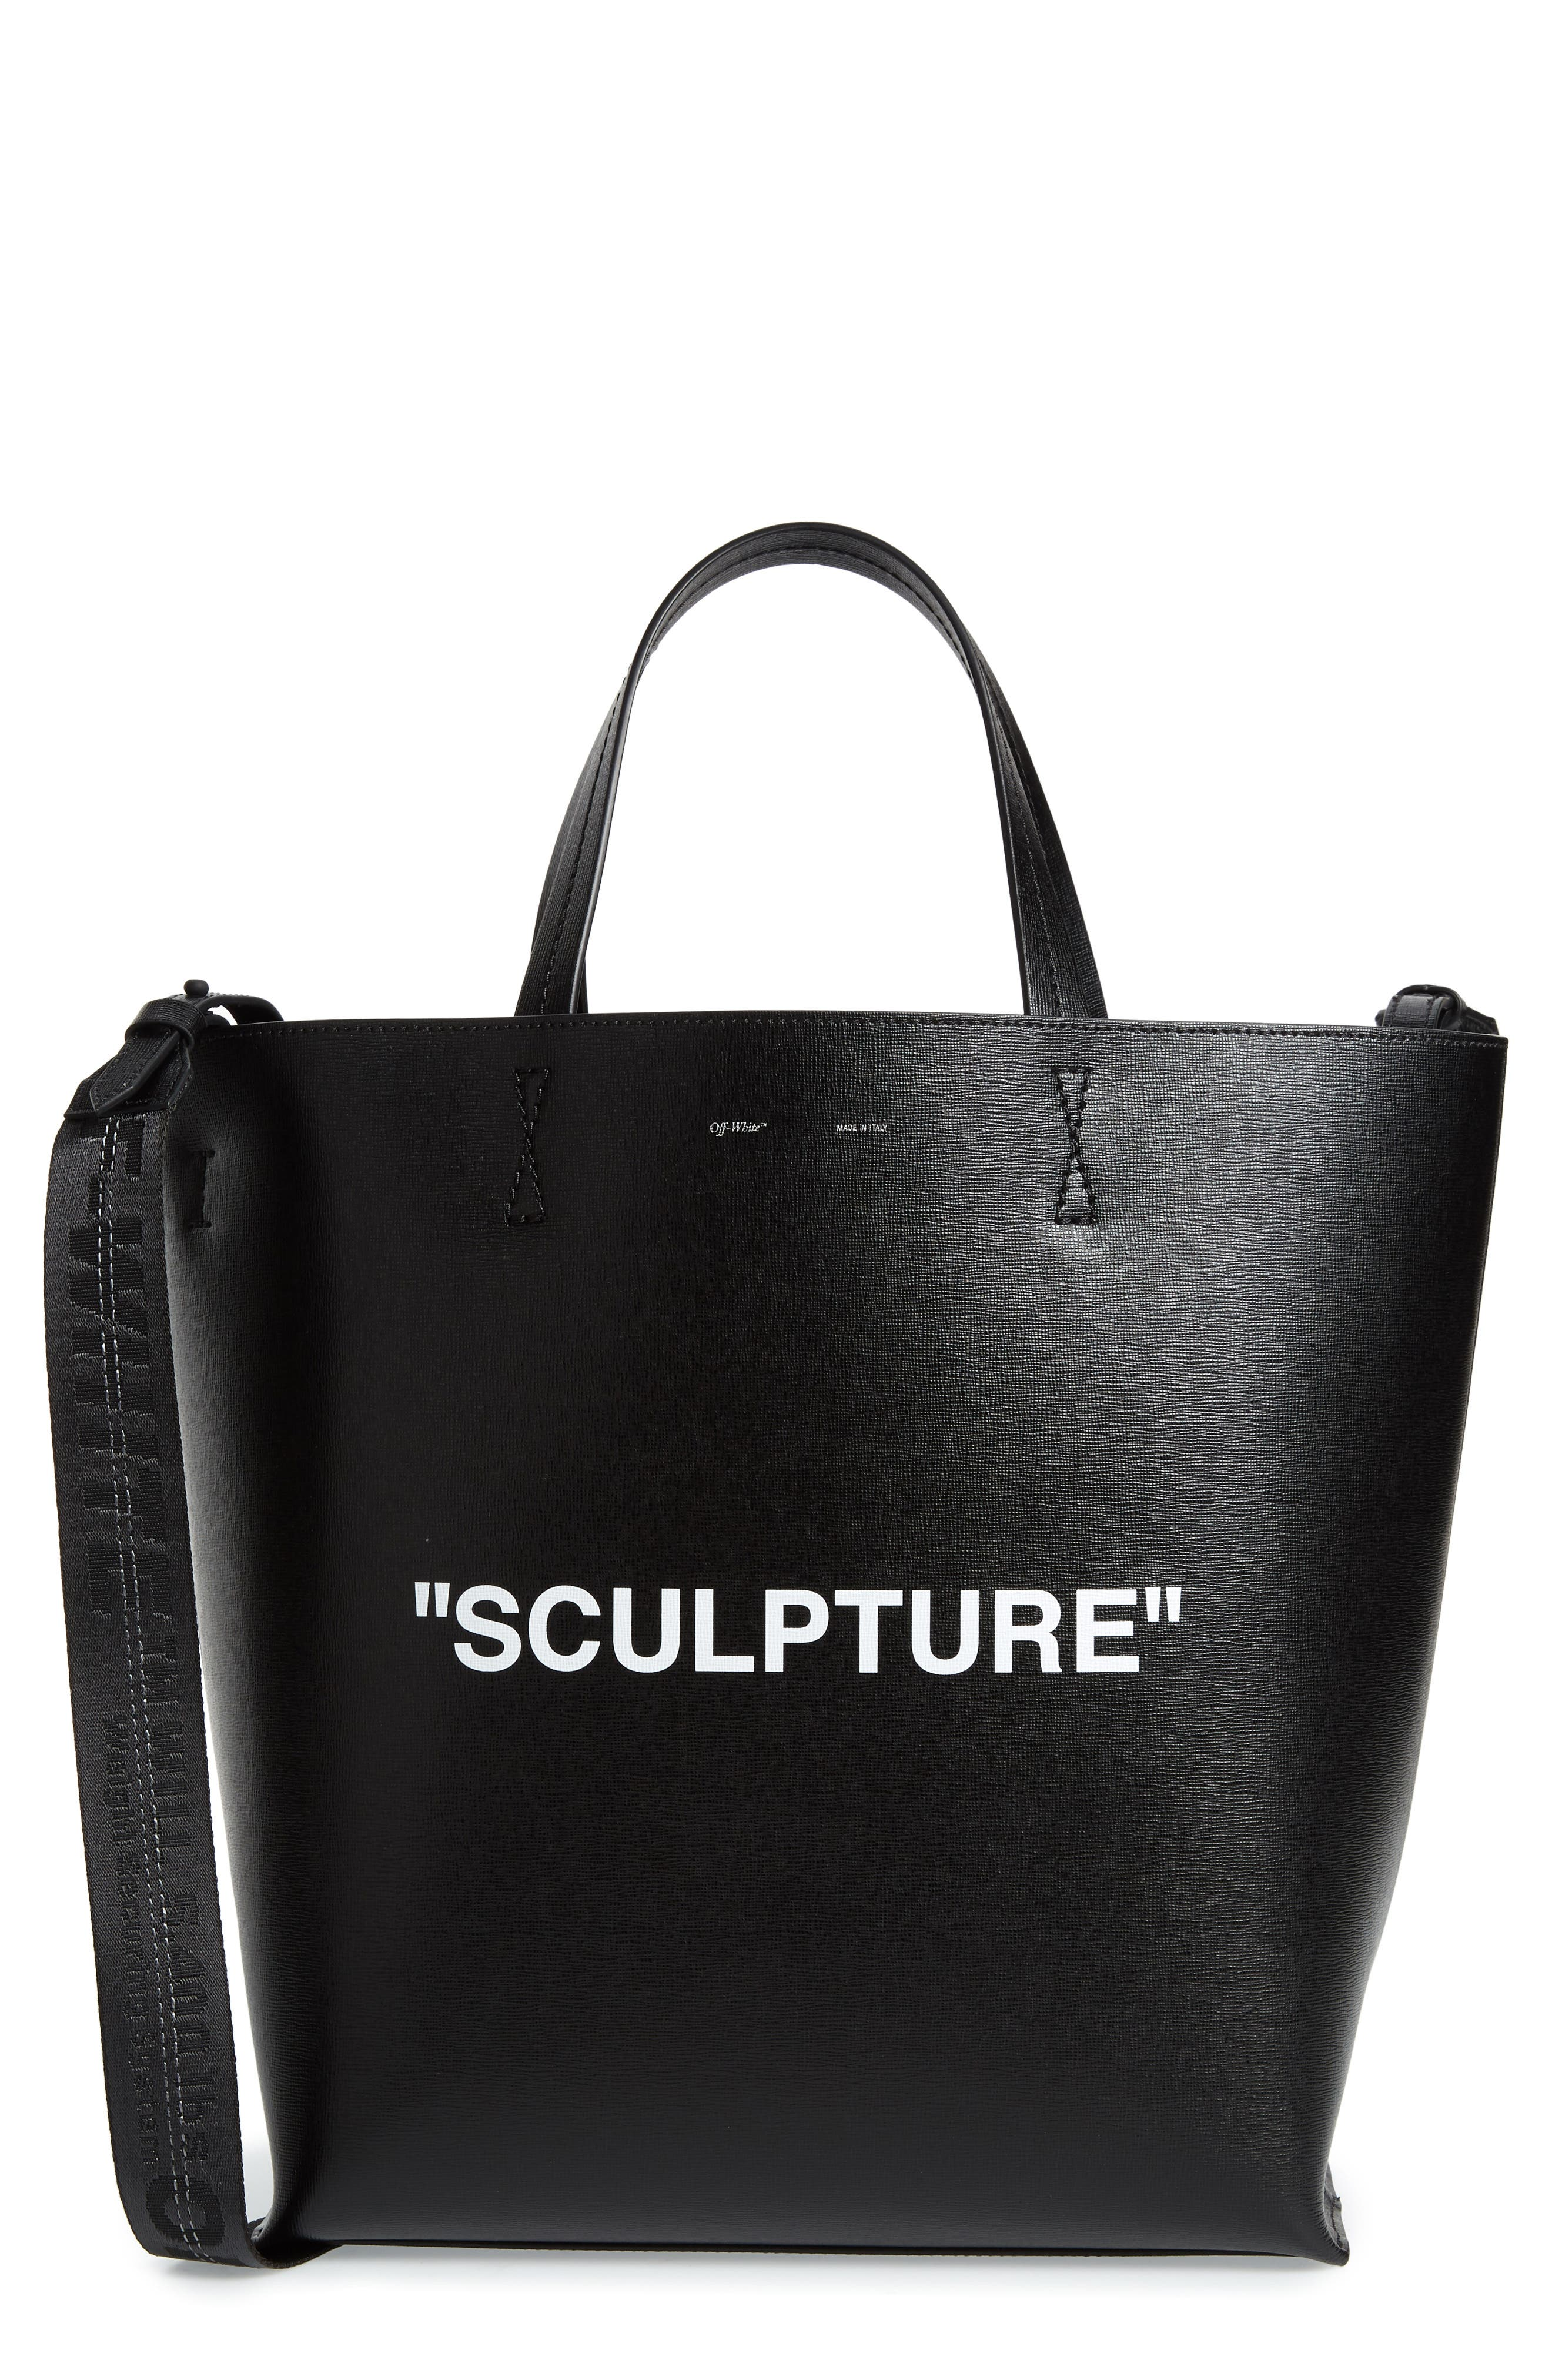 Alternate Image 1 Selected - Off-White Large Sculpture Leather Tote